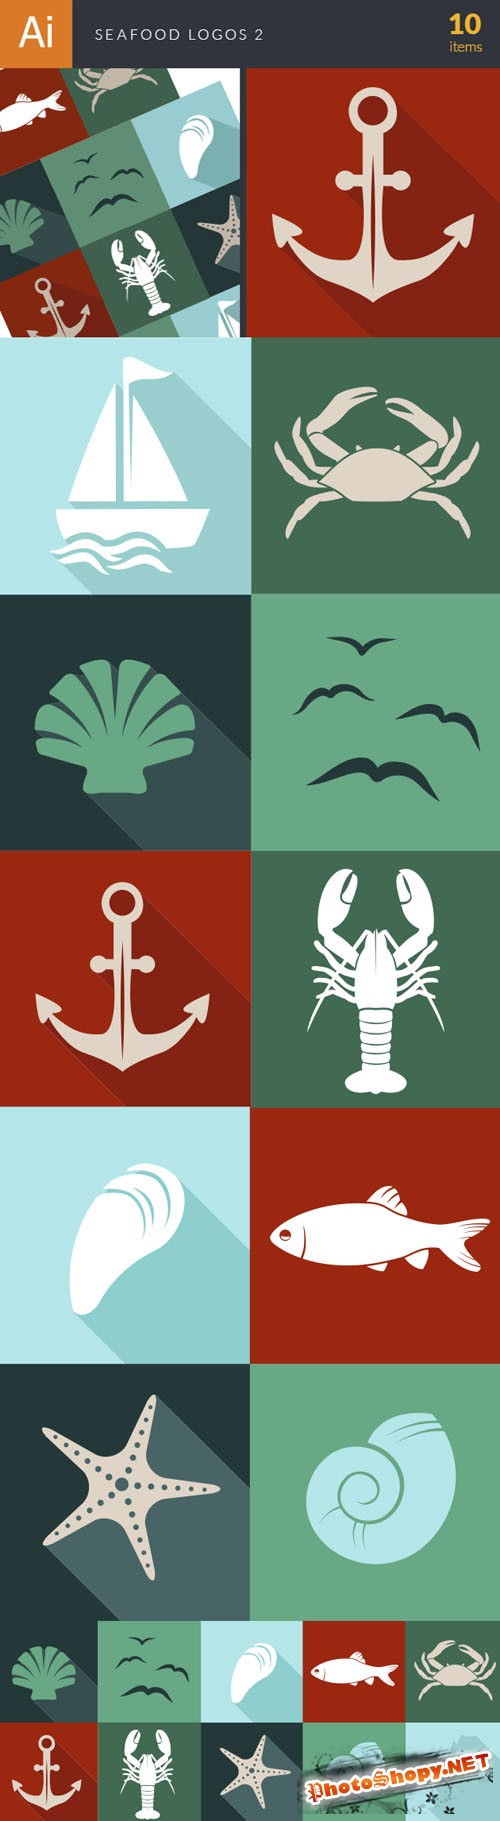 Seadfood Logos Vector Illustrations Pack 2